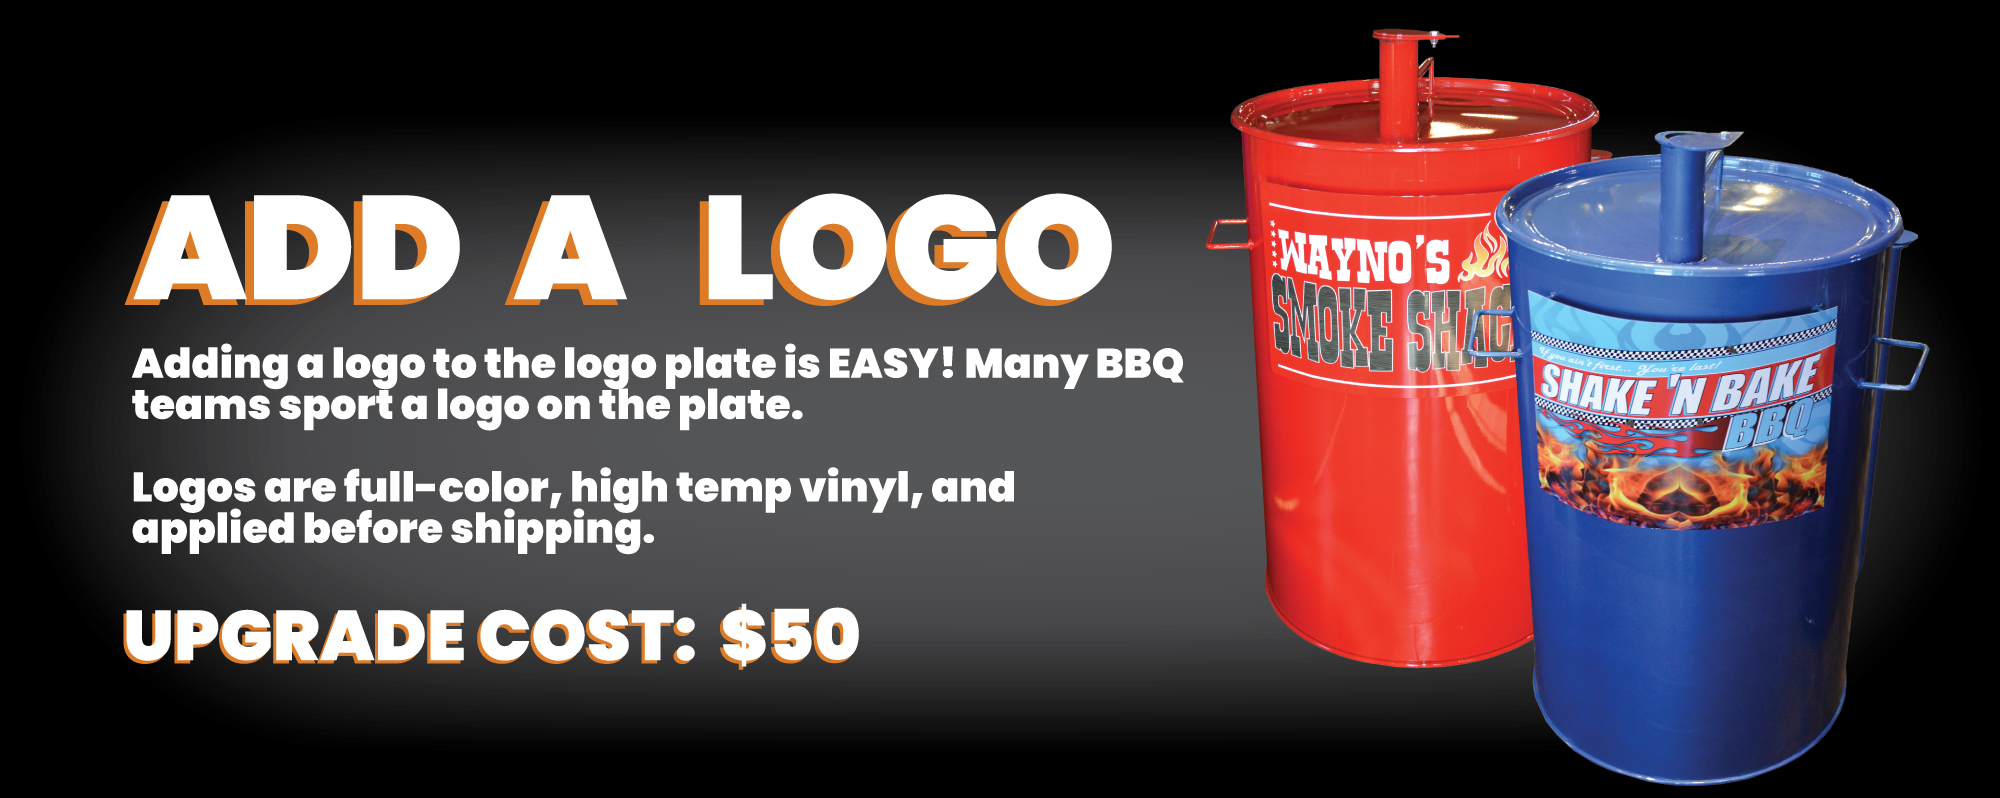 Add a Logo:Adding a logo to the logo plate is easy! Many BBQ Teams sport a logo on the plat. Logos are full color, high temp vinyl, and applied before shipping. Upgrade Cost: $50